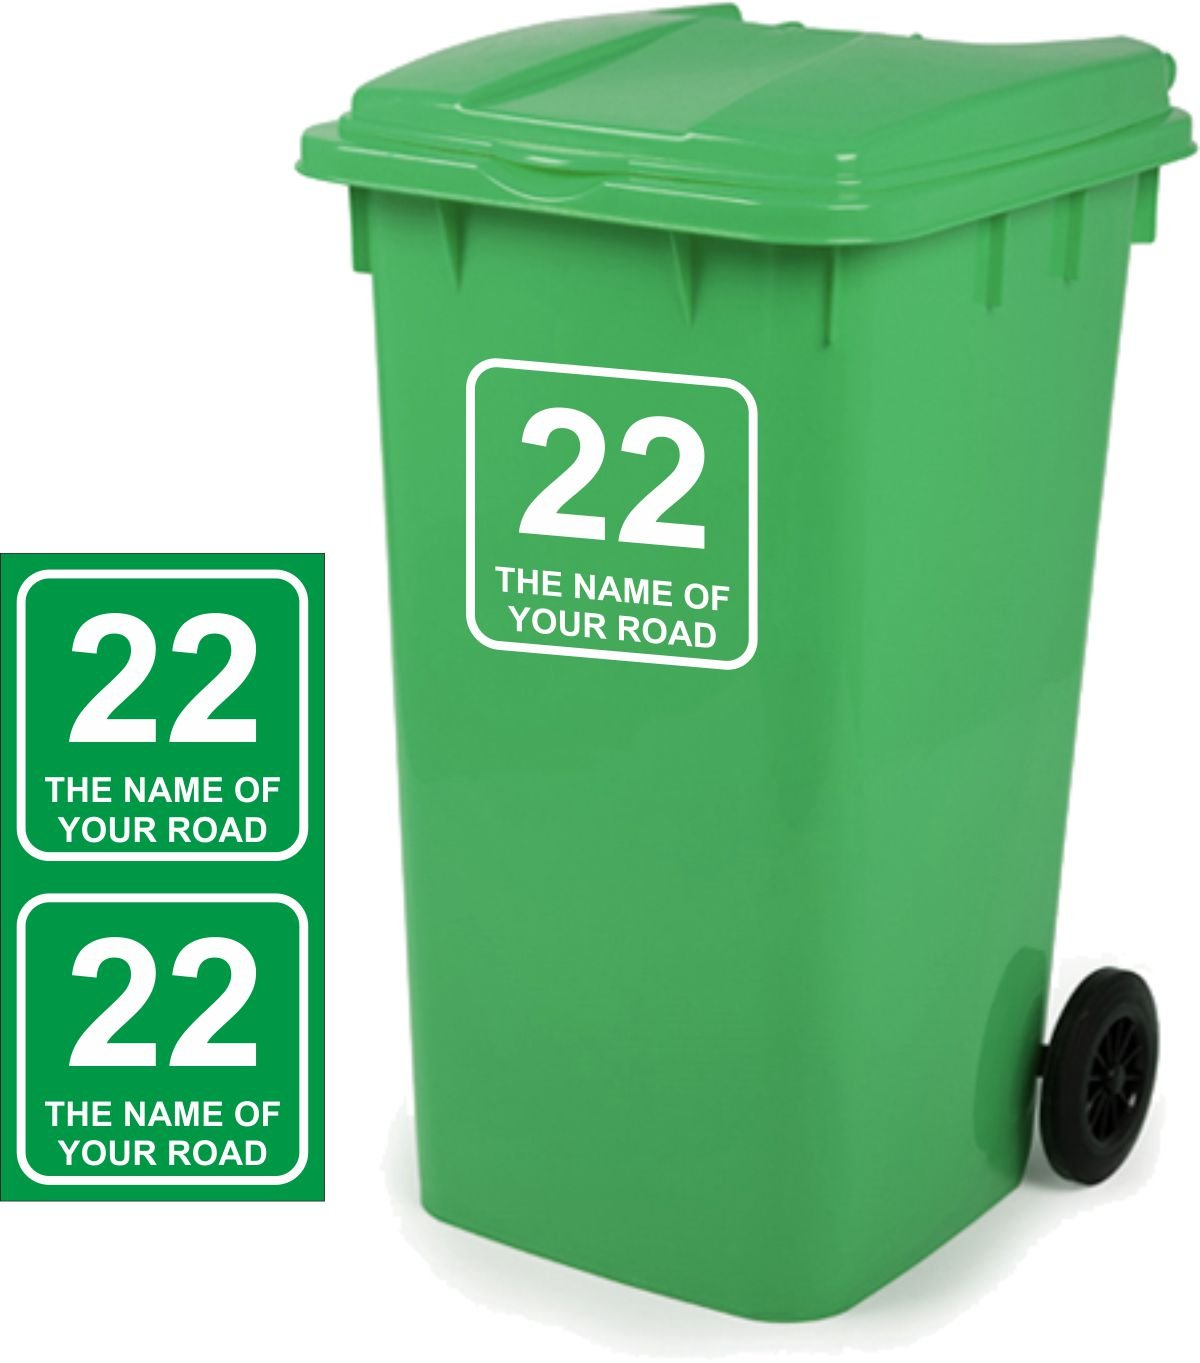 Wheelie Bin Stickers Personalised Pack of 2 Signs Size 18cm x 18cm D3 Vinyl Signs Direct